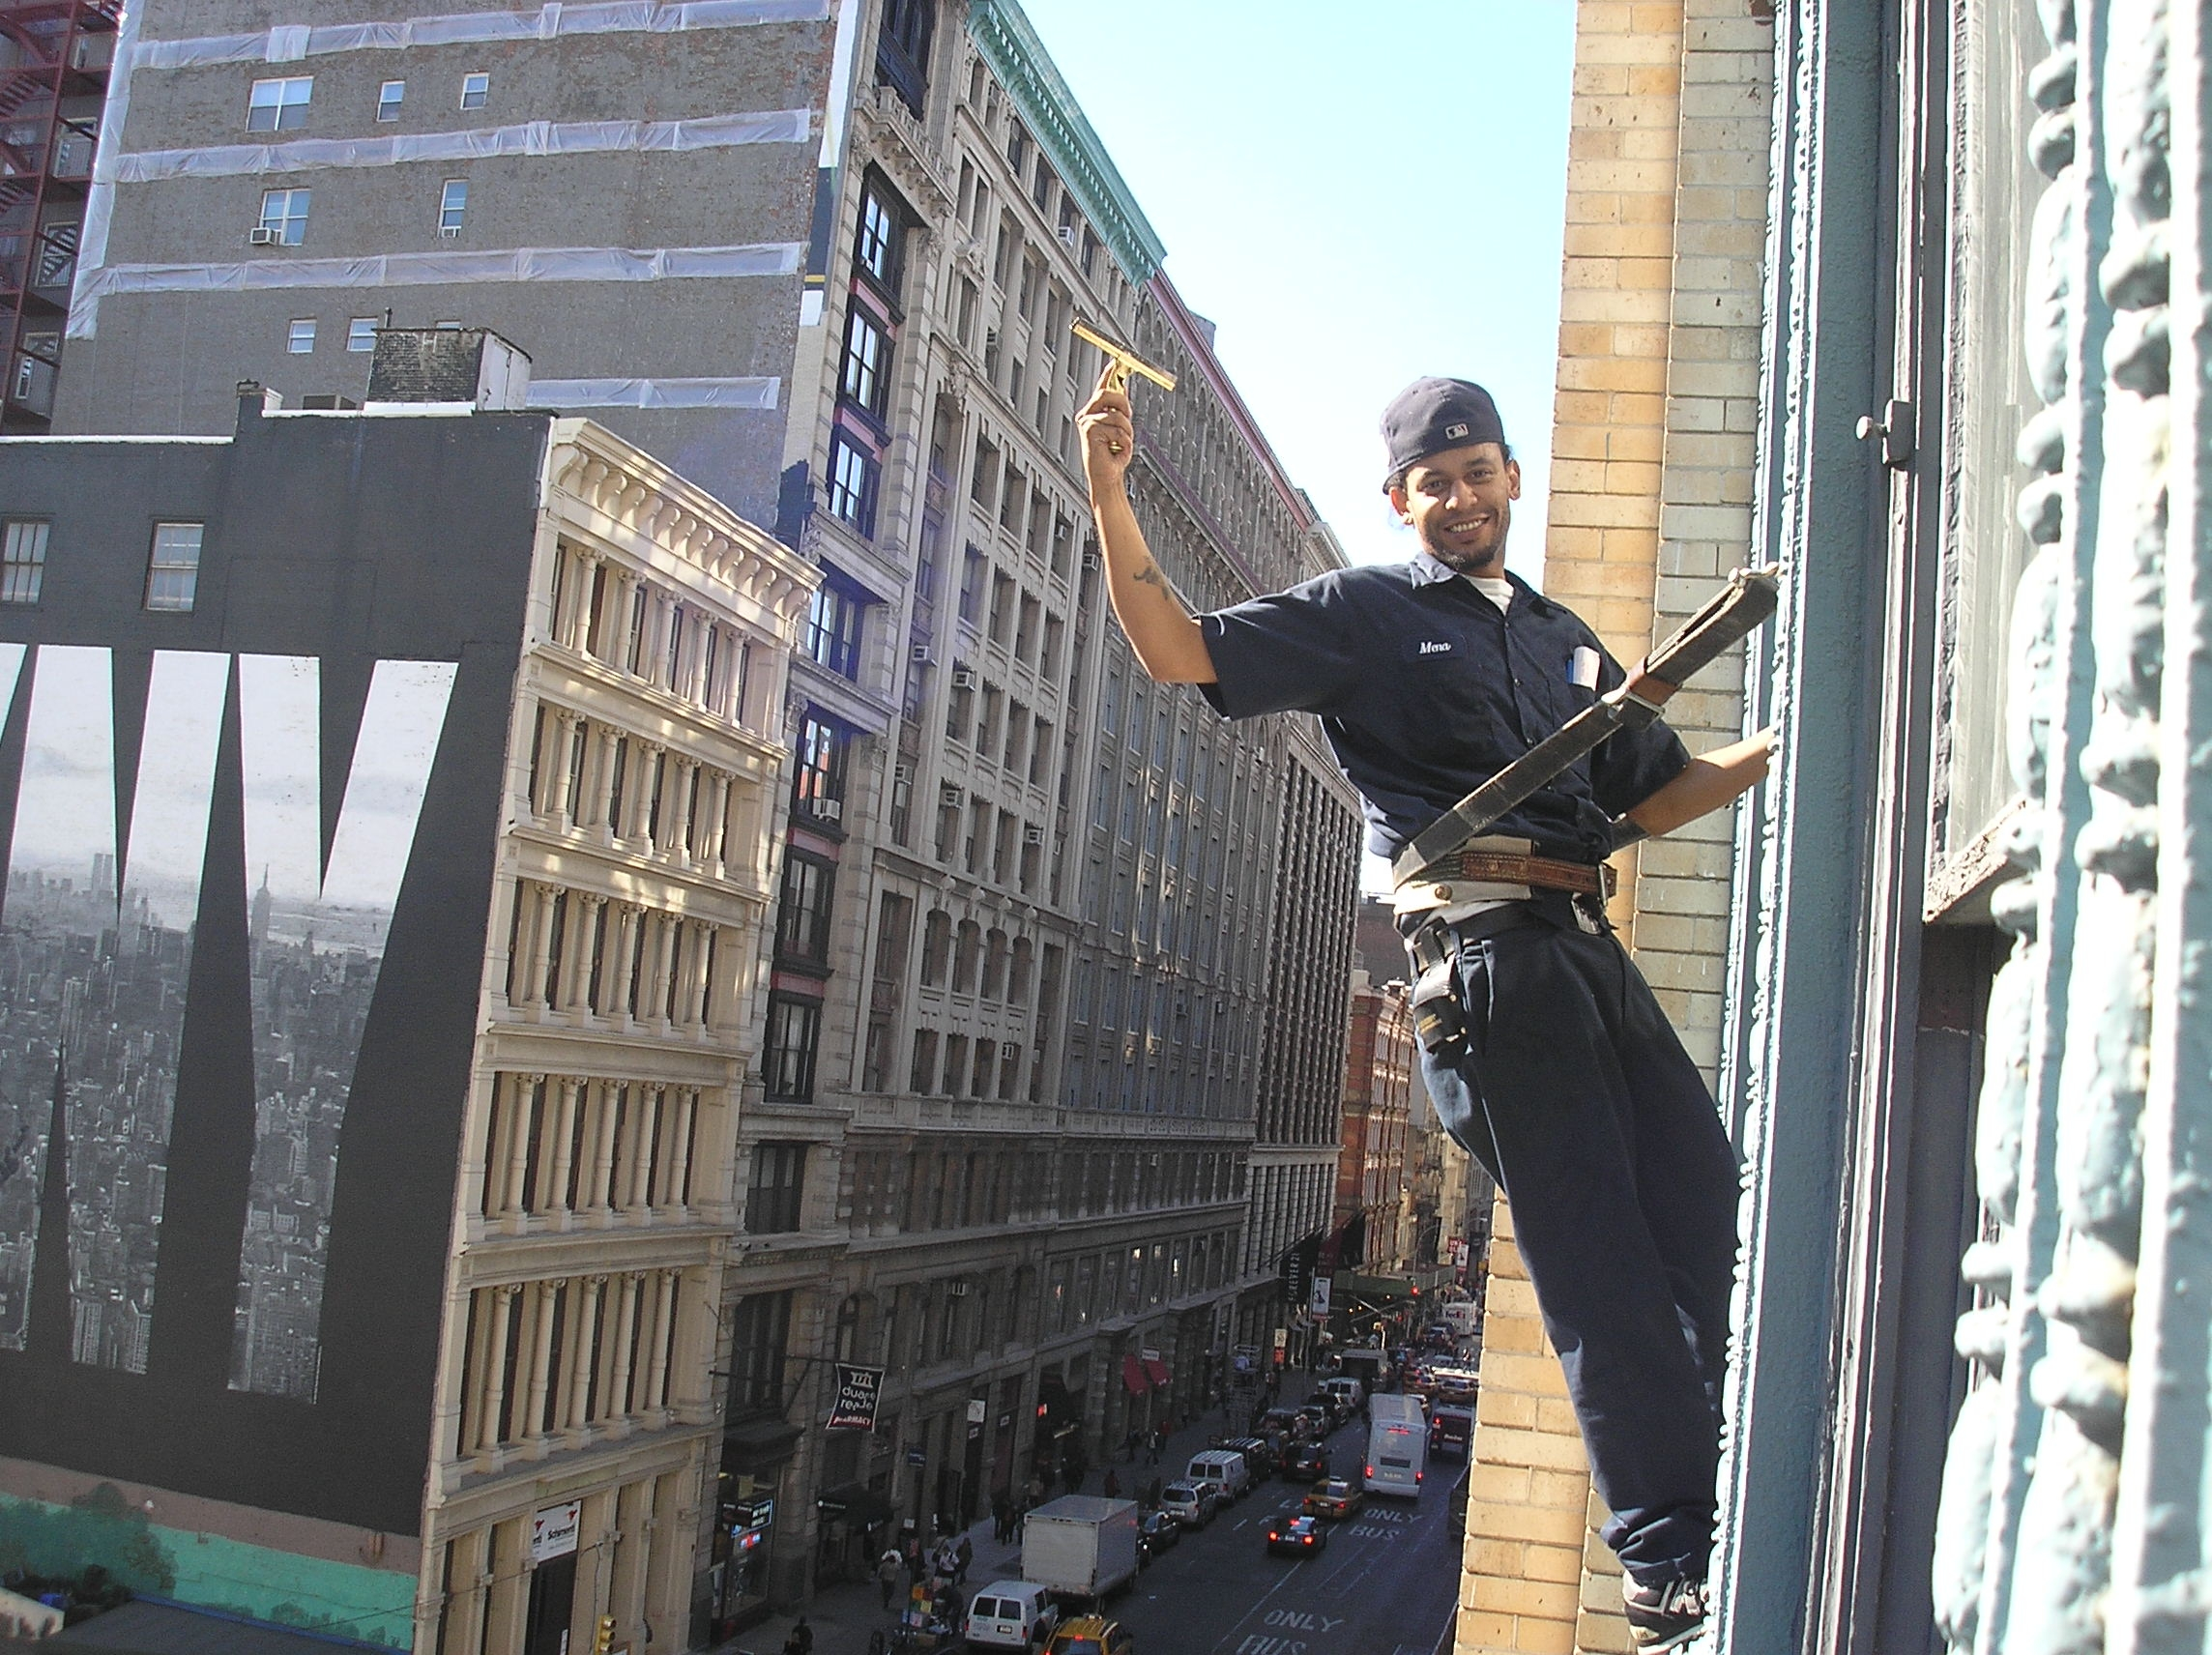 learn more at On window washer